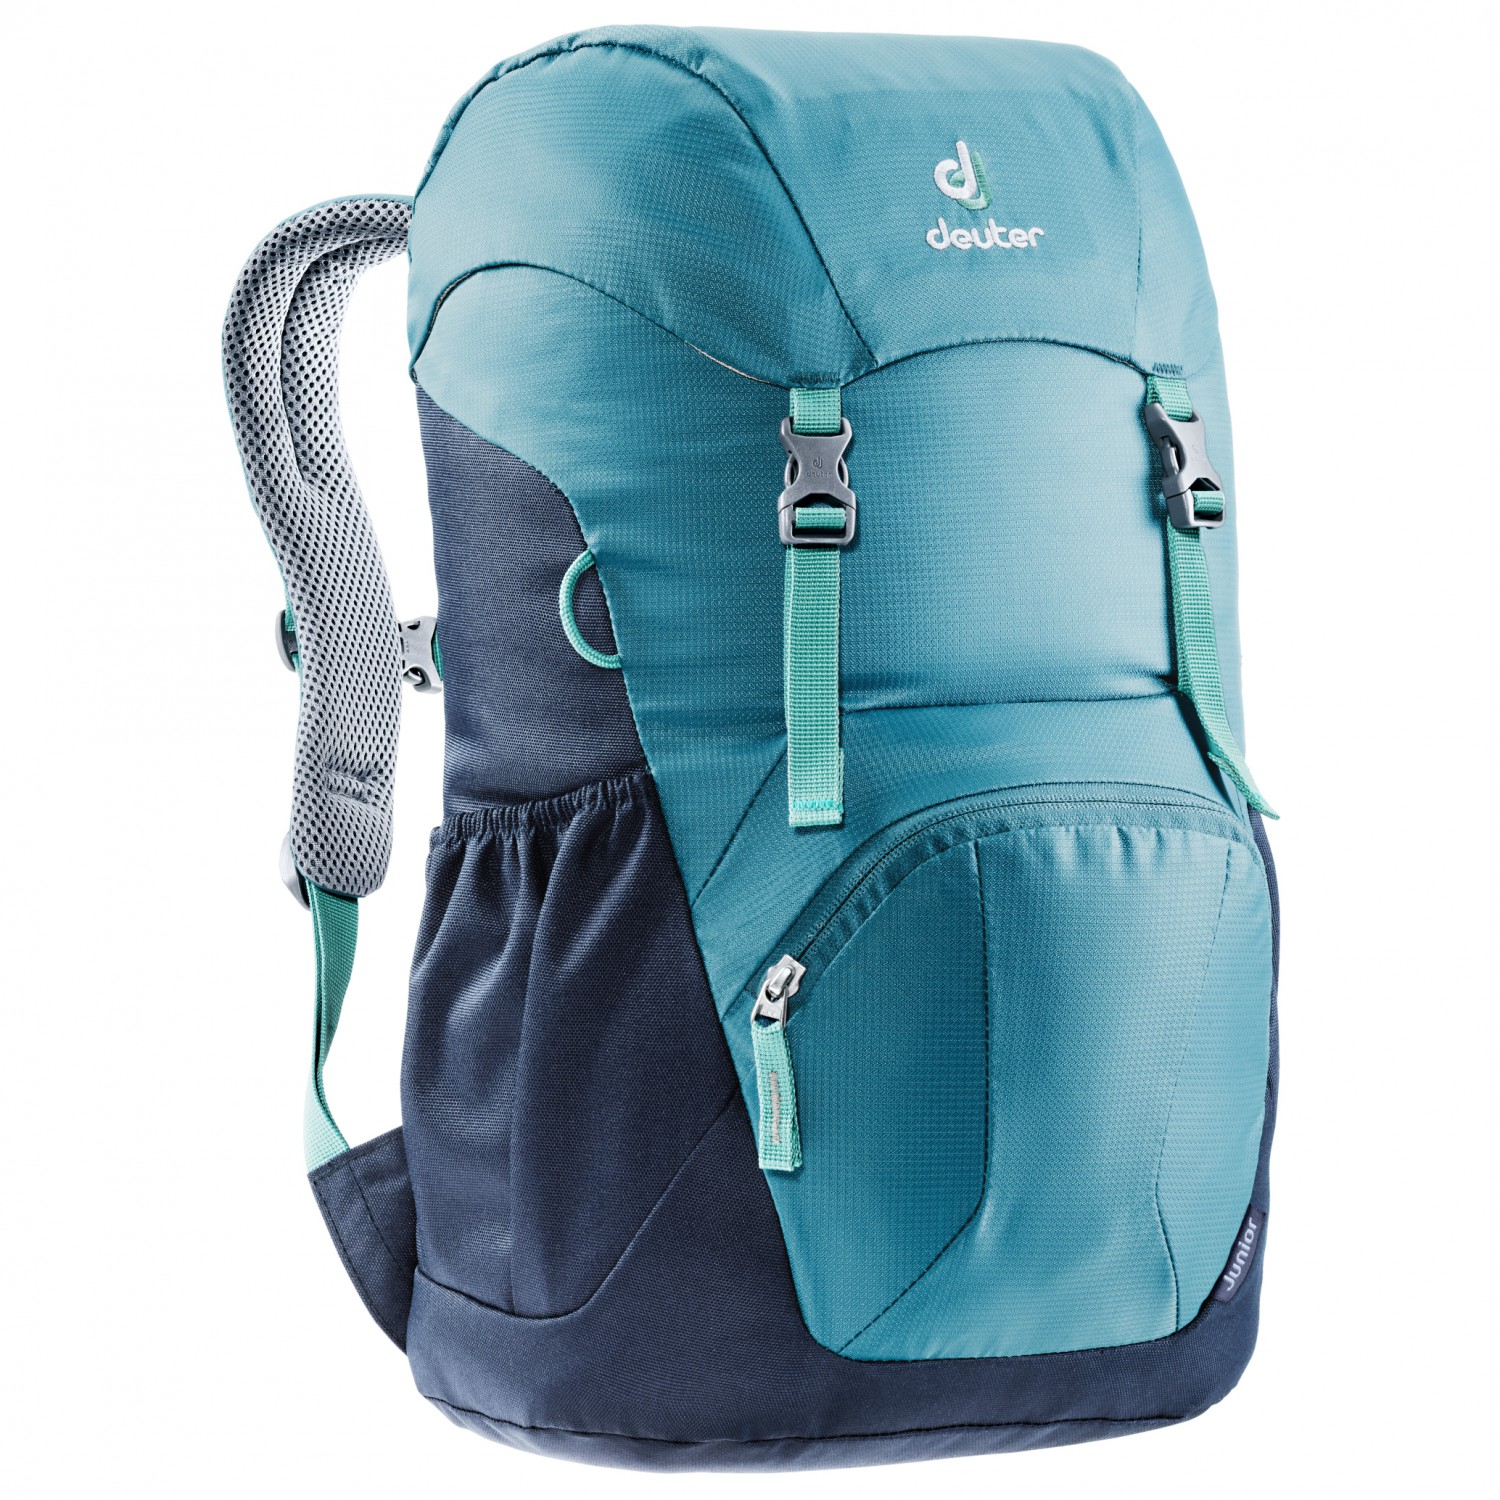 f22c3385b3b7 Deuter Junior - Backpack Kids